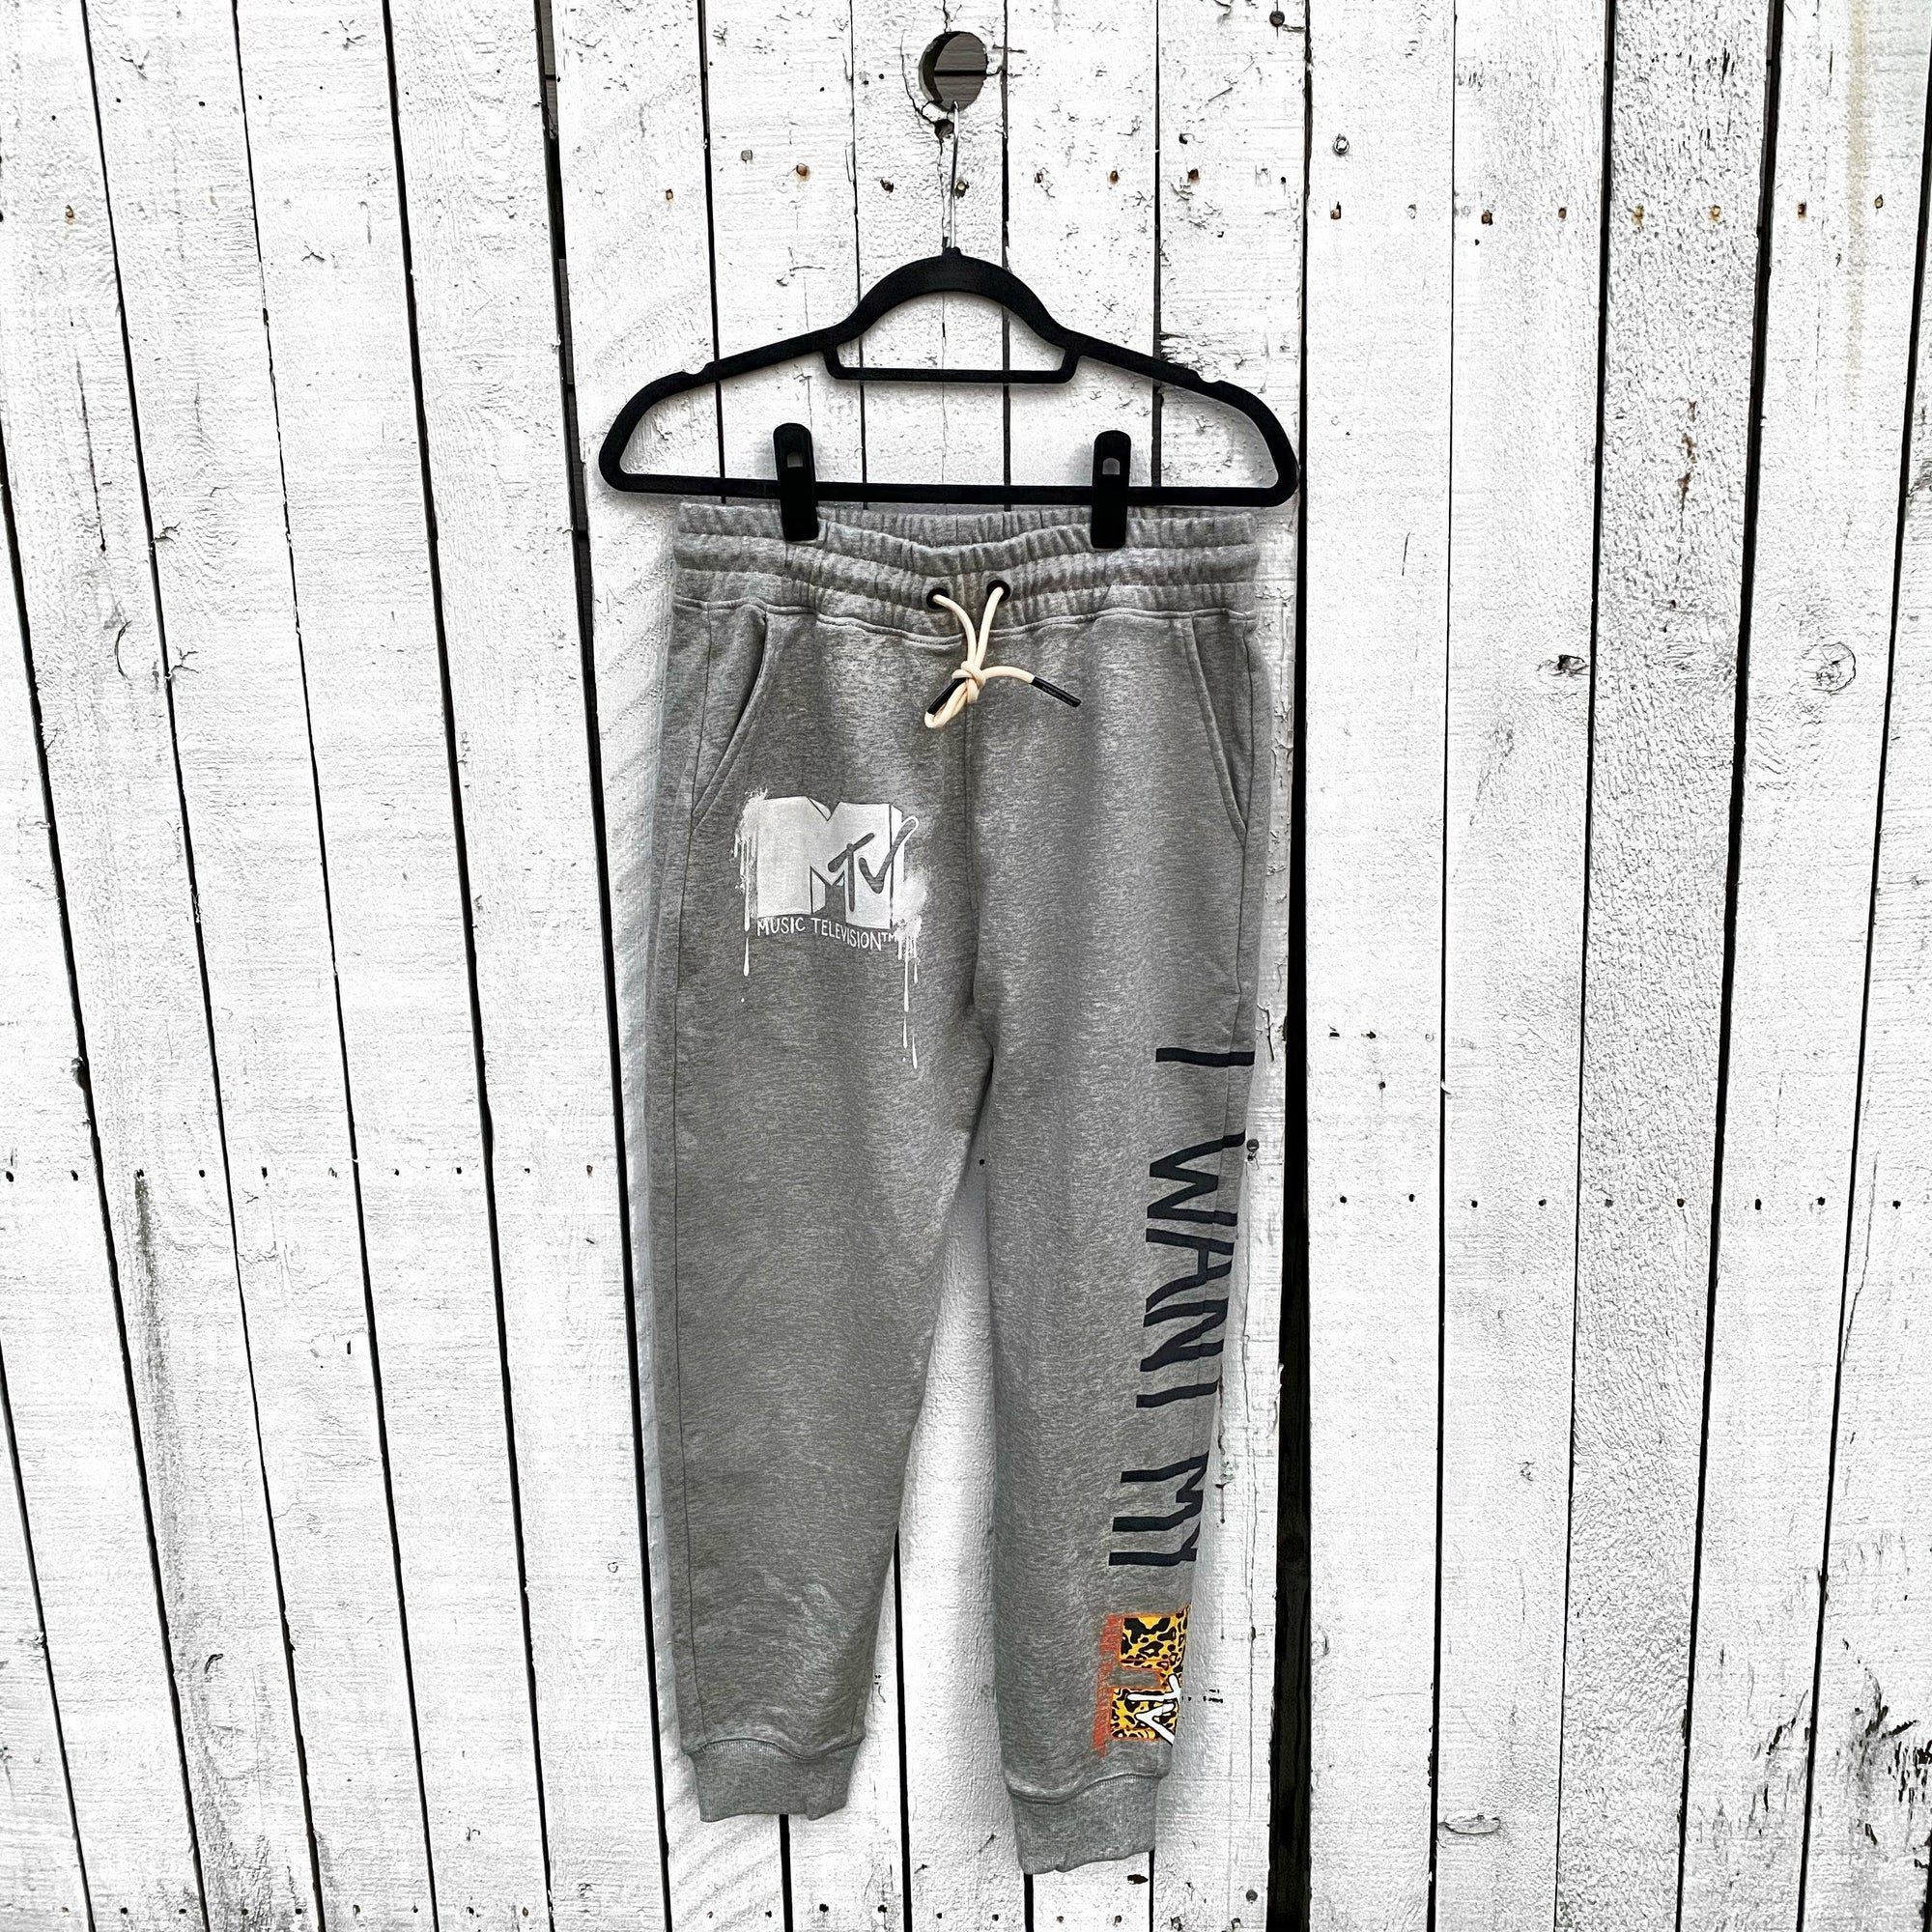 WG x MTV 'MTV AND LEOPARD' SWEATPANTS